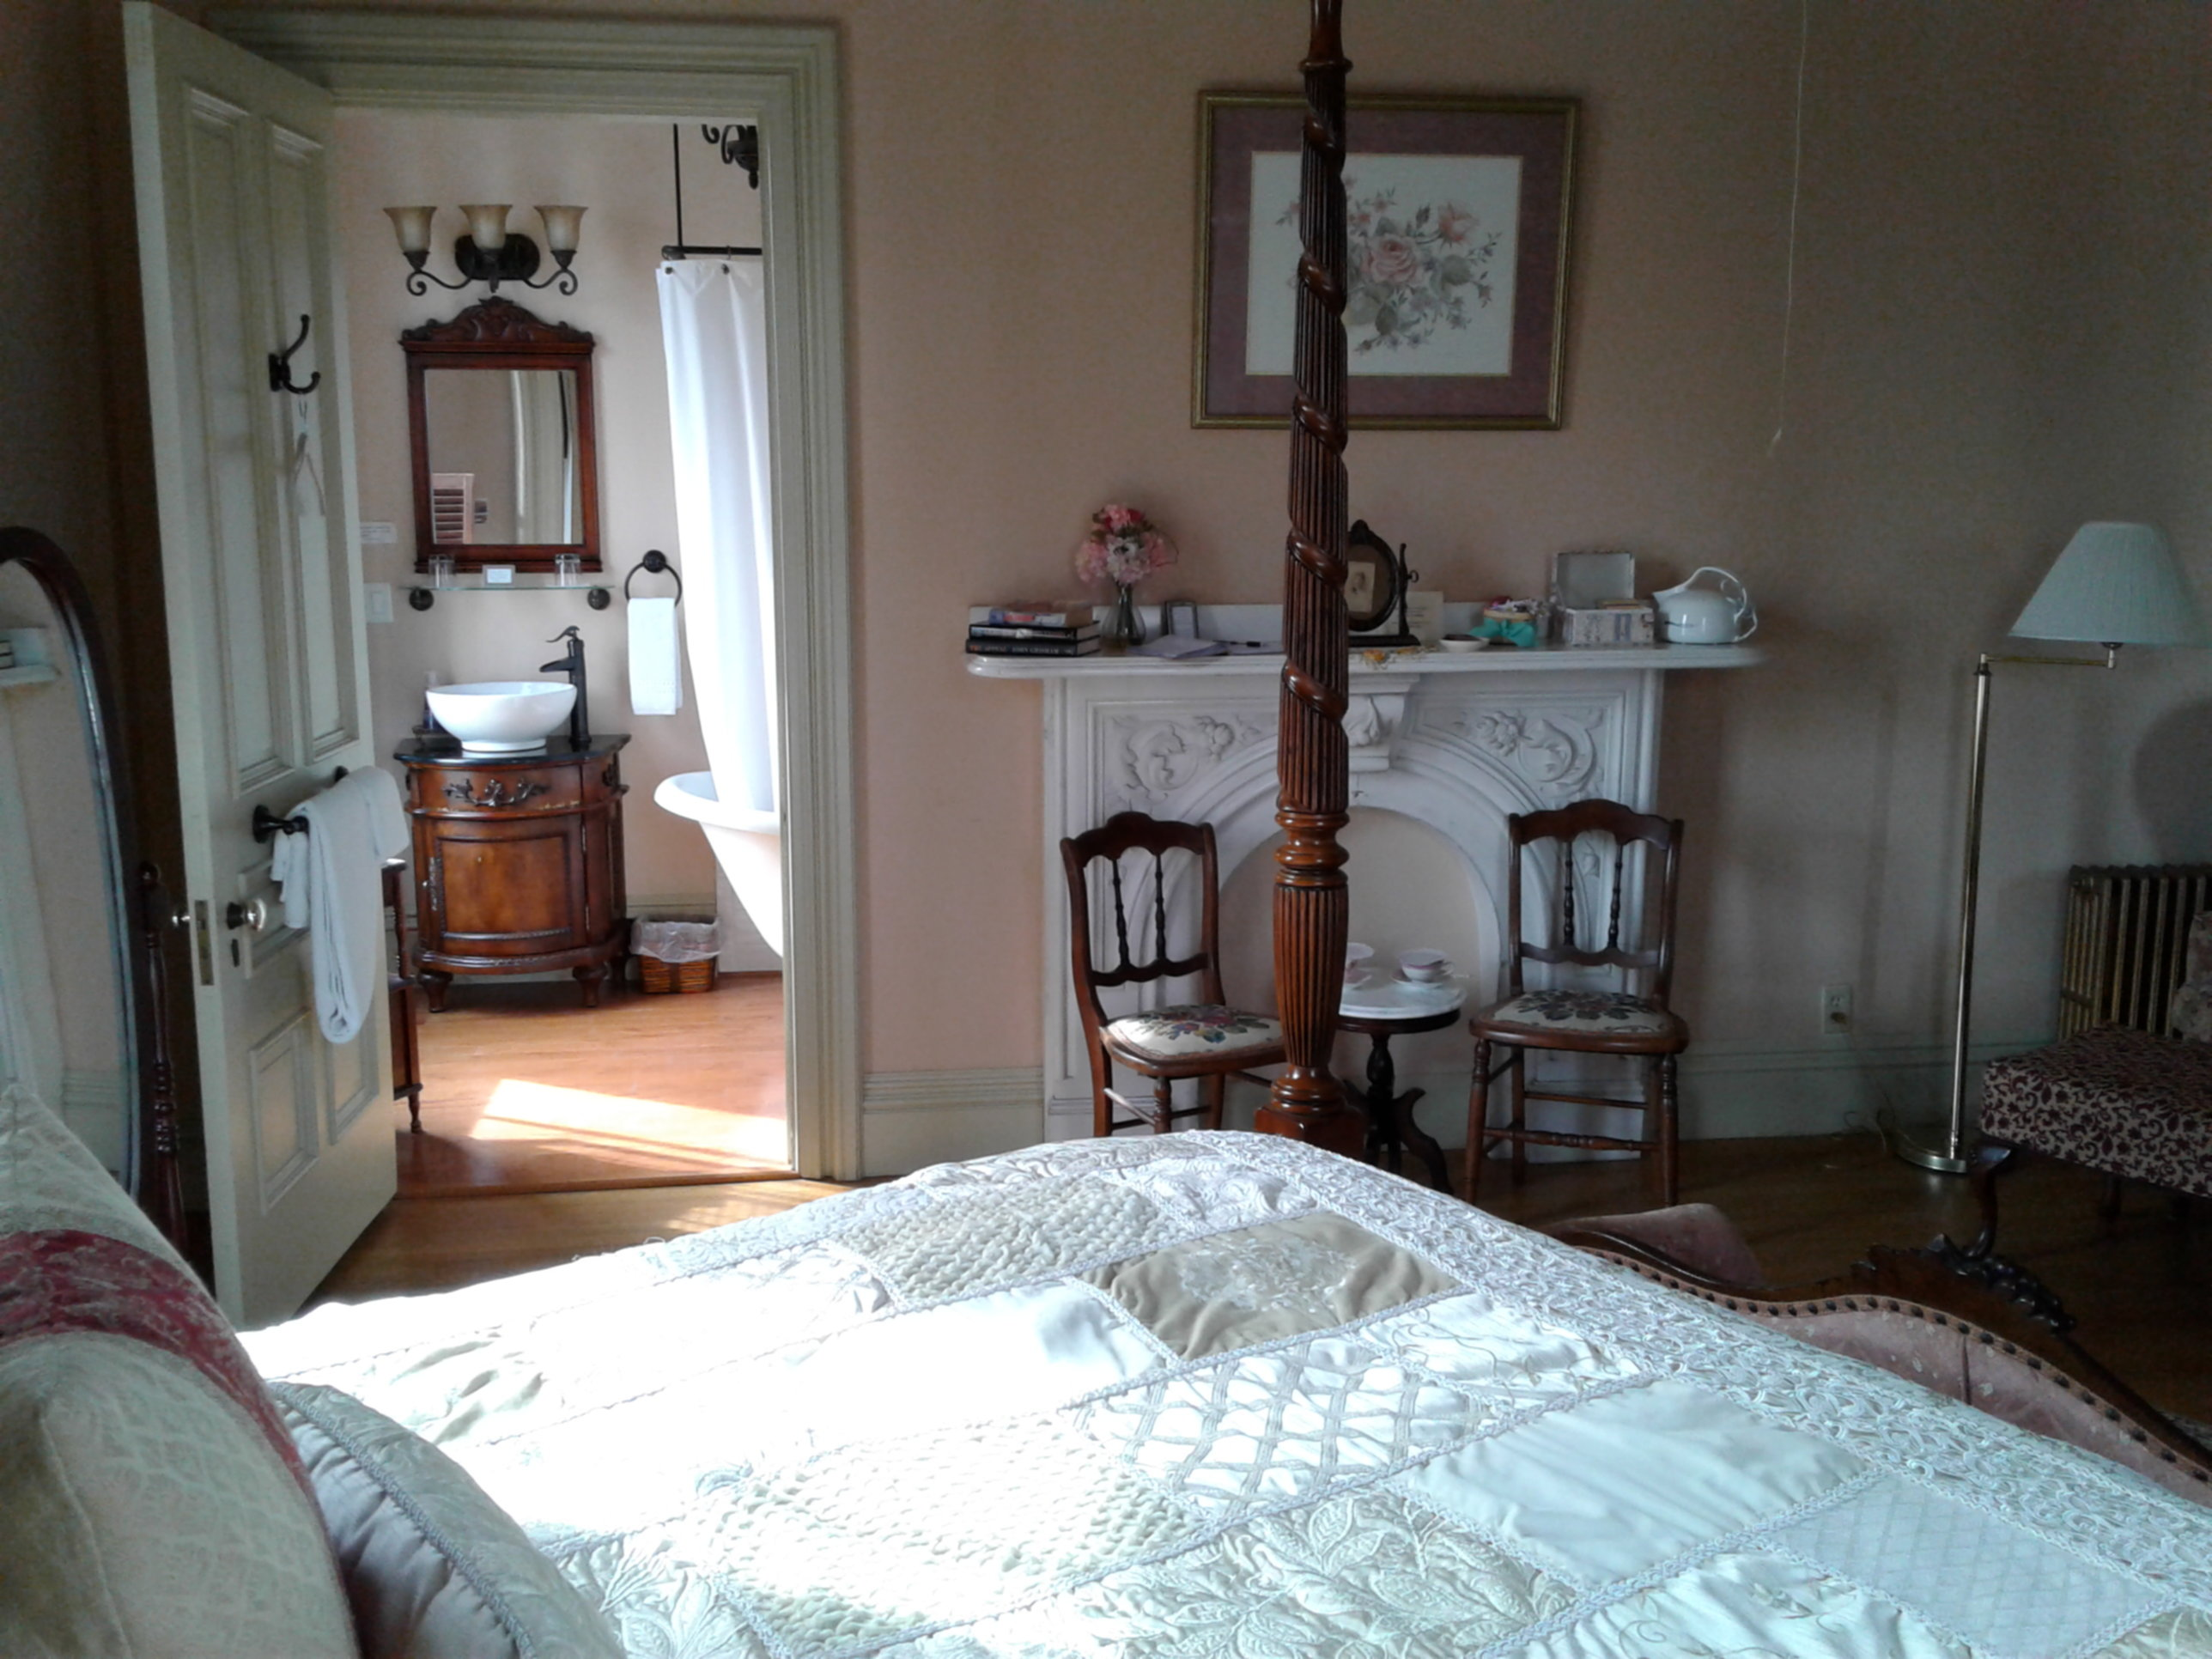 A bedroom with a bed and a chair in a room at Proctor Mansion Inn.